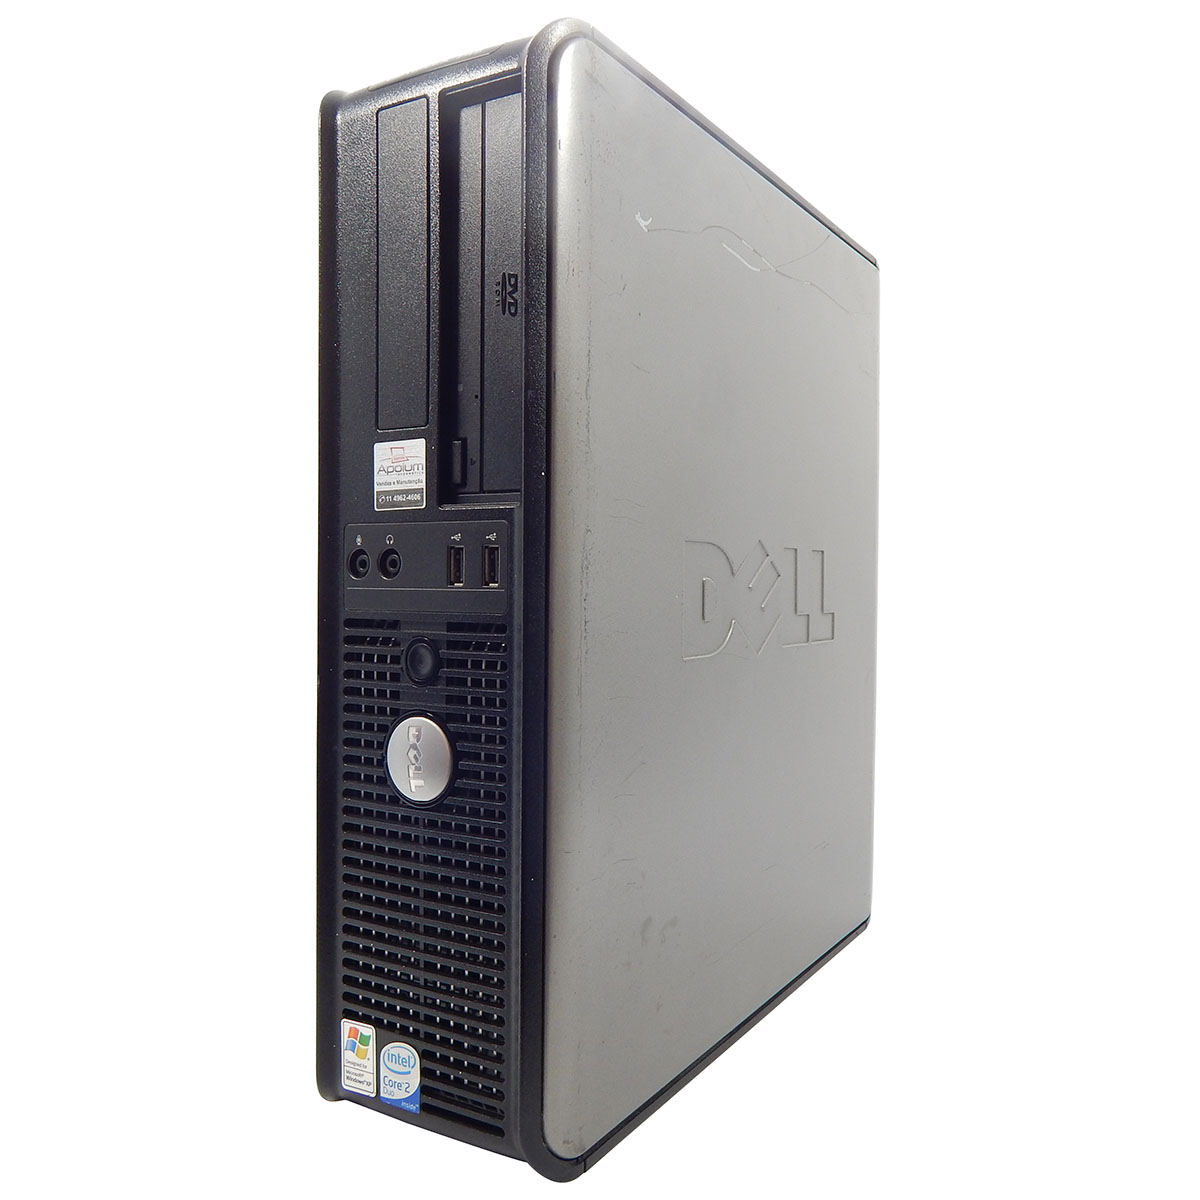 PC Dell Slim 745 C2D E4300 1.8Ghz - 2GB DDR2 - 80GB - DVD-RW - Seminovo - N